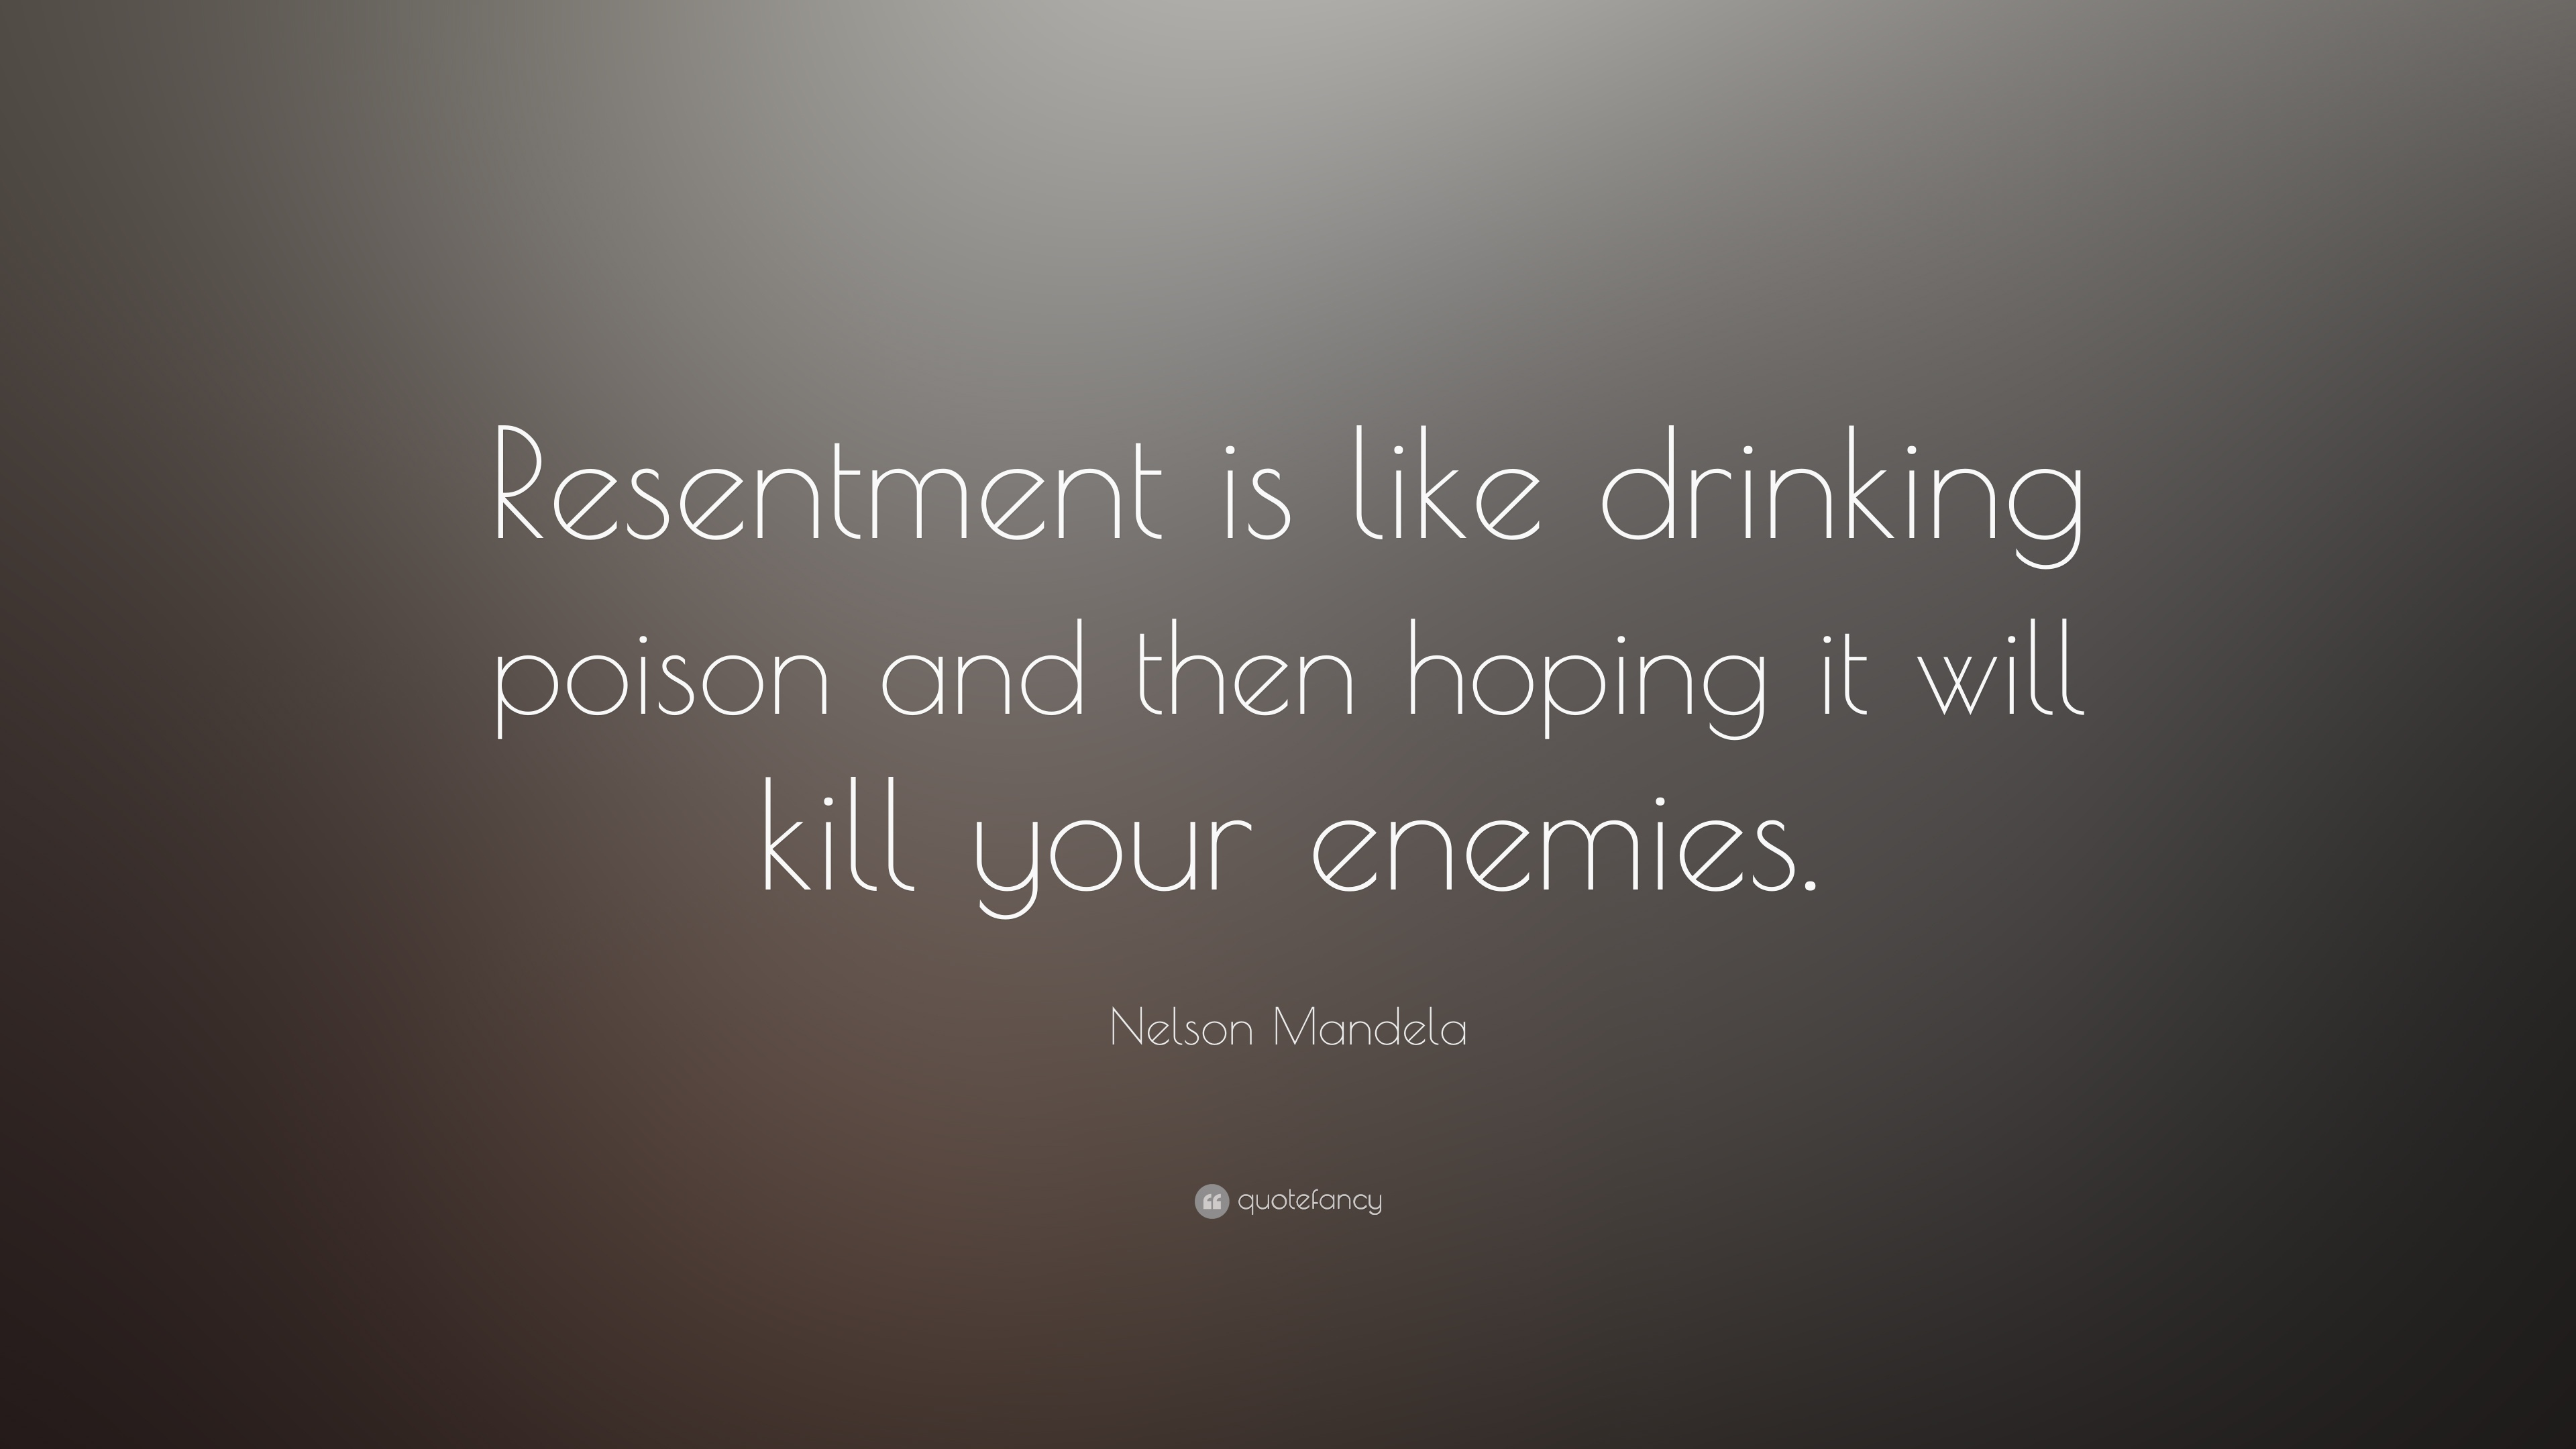 Resentment is like drinking poison and then hoping i will kill your enemies.